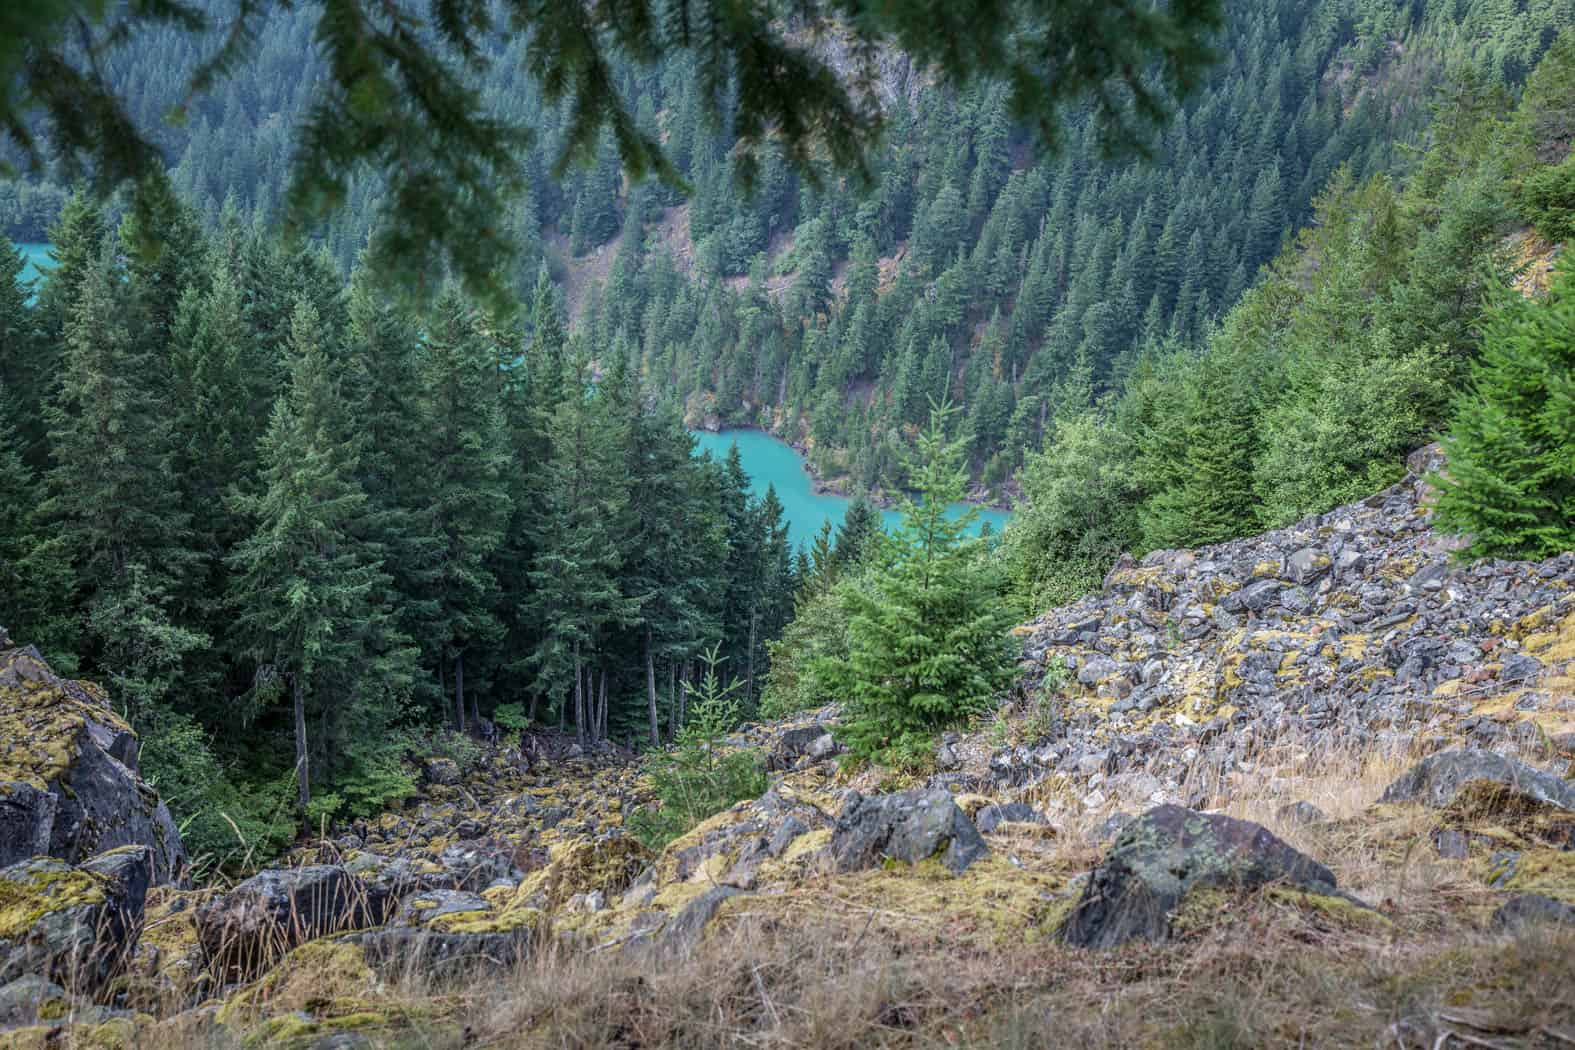 Diablo Lake in Washington State seen through the trees.